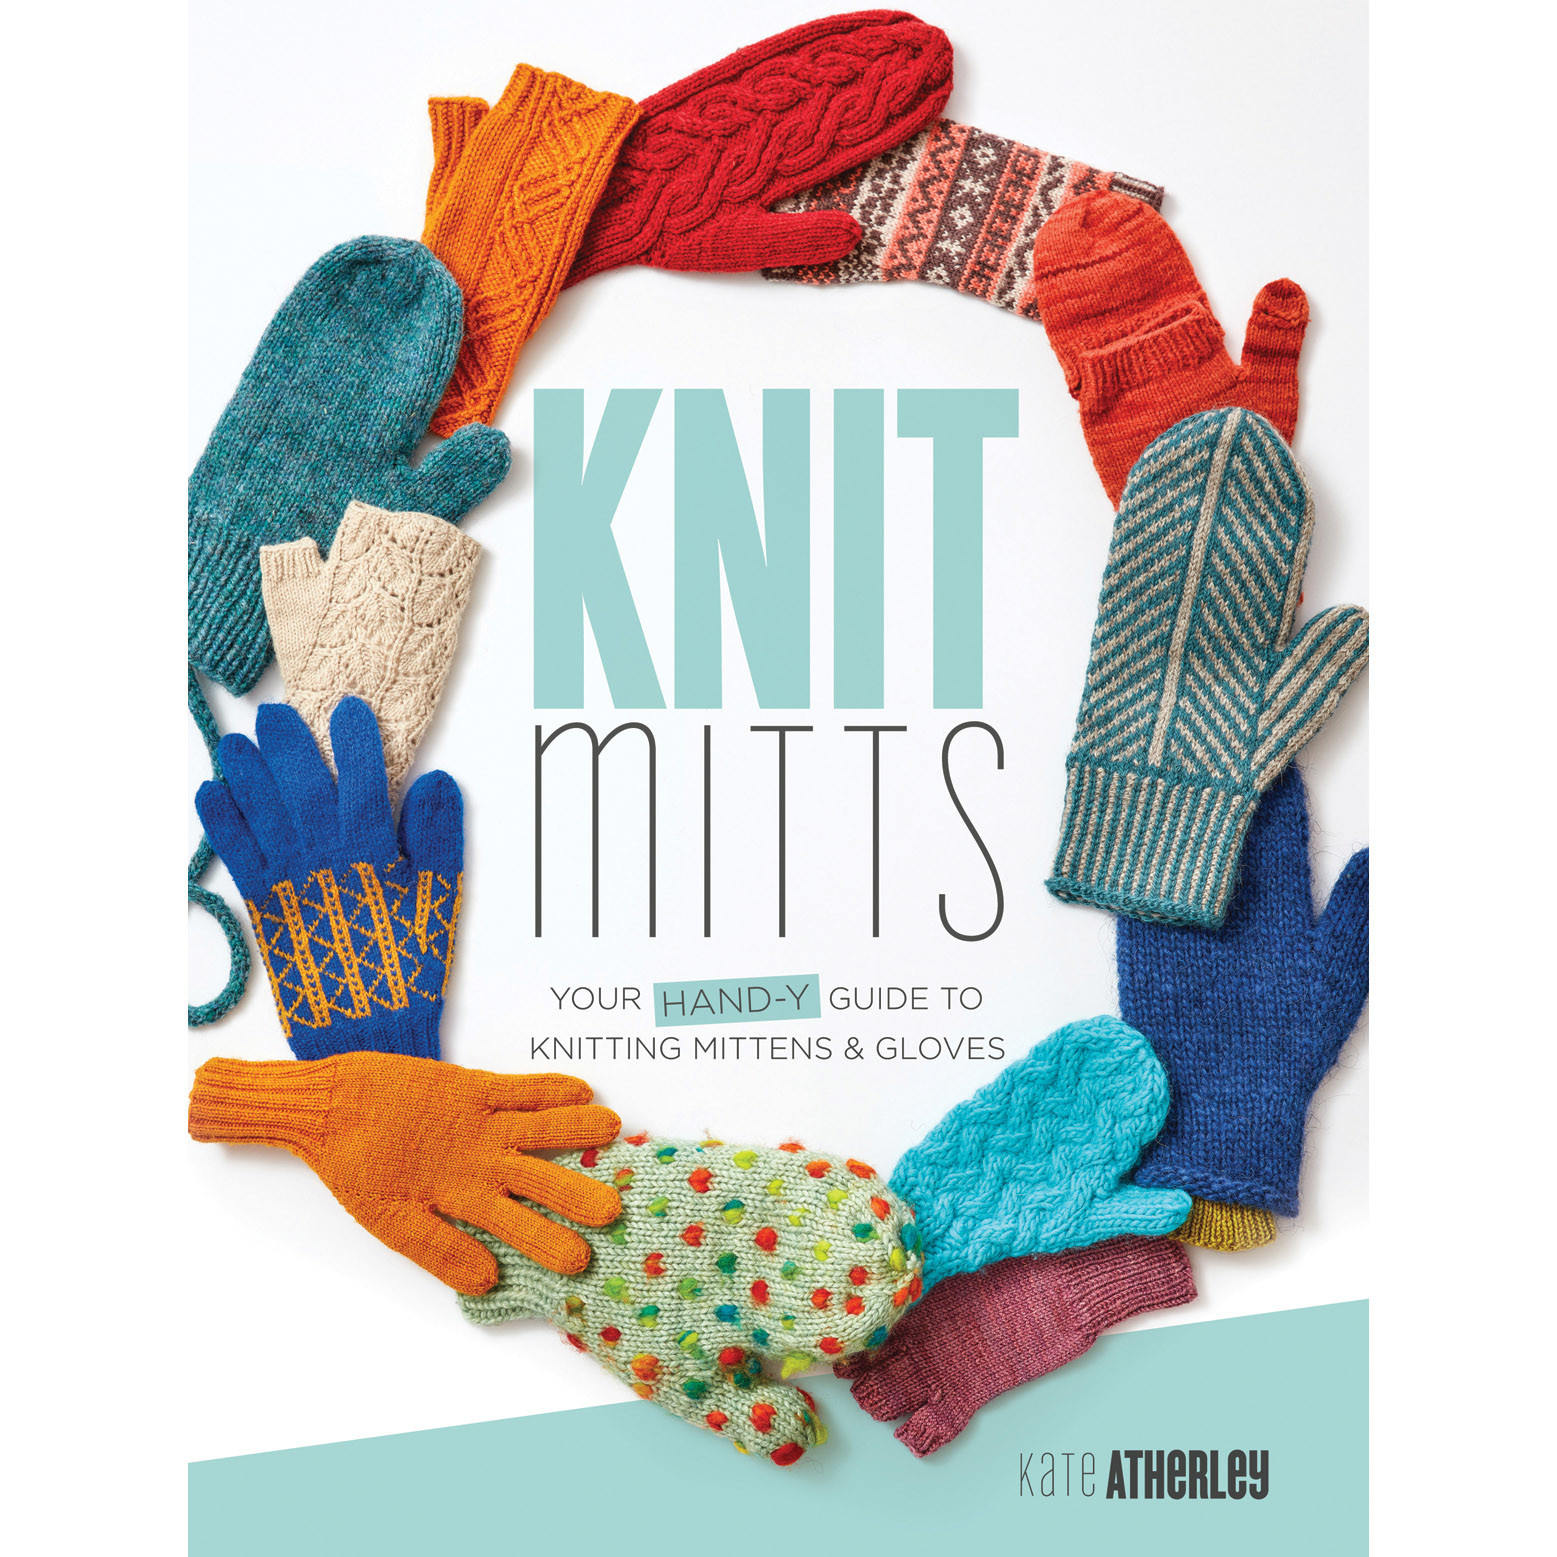 KNIT MITTS by KATE ATHERLEY